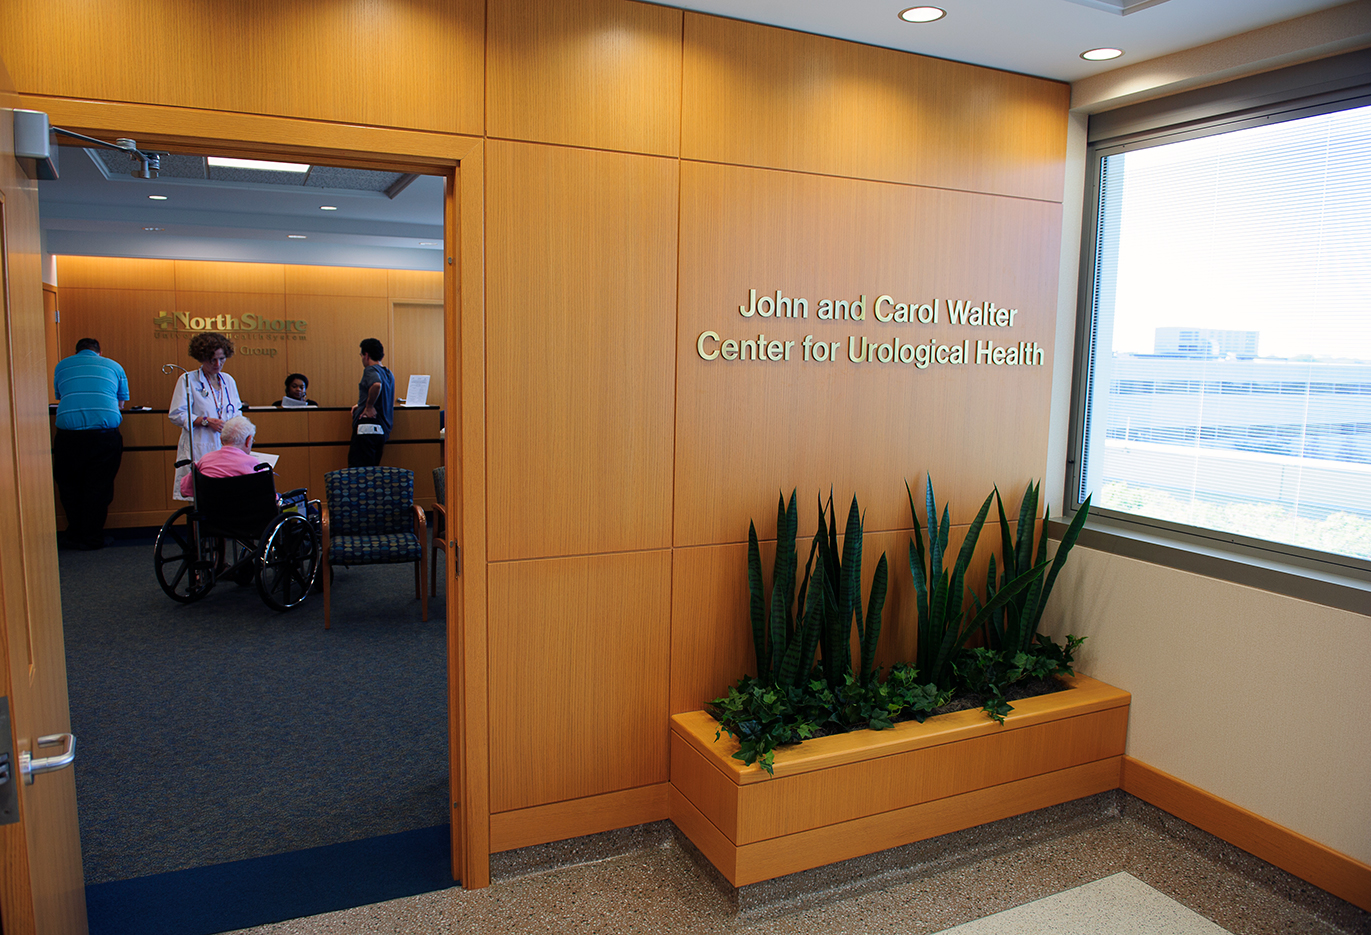 John and Carol Walter Center for Urological Health front entrance